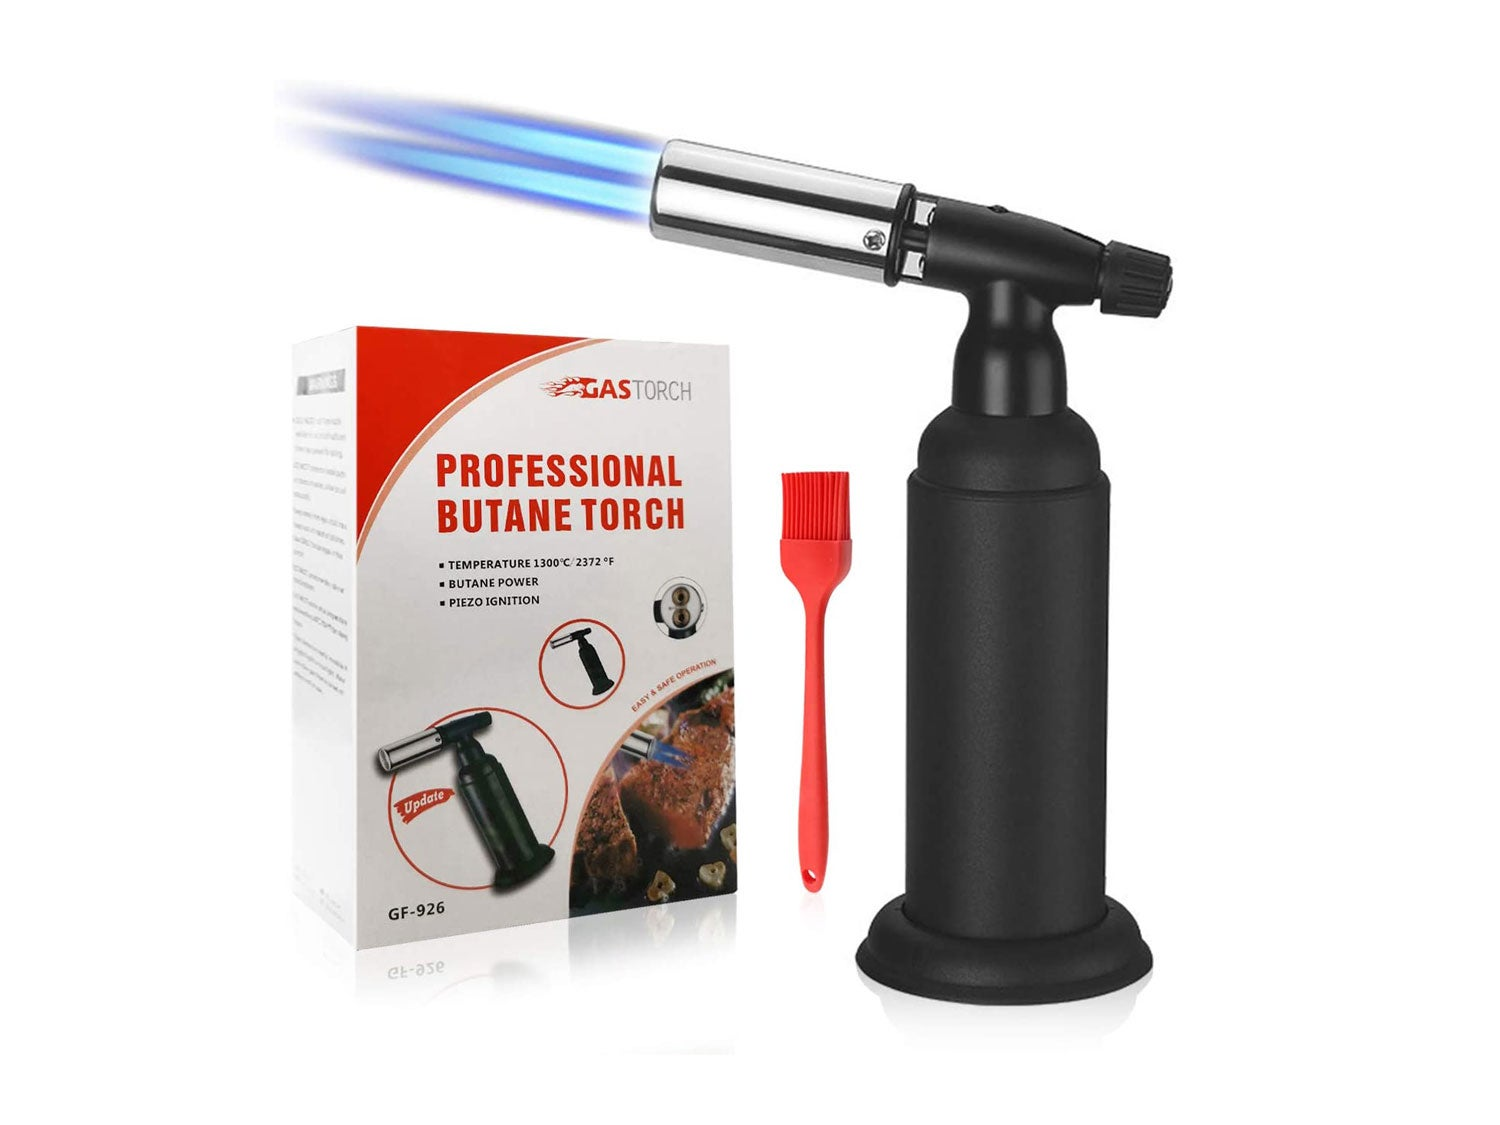 The perseids Blow Torch, Double Flame Culinary Torch Refillable Cooking Butane Torch Lighter with Adjustable Flame for BBQ, Crème Brûlée, Desserts, Baking, and Grilling, Butane Gas Not Included